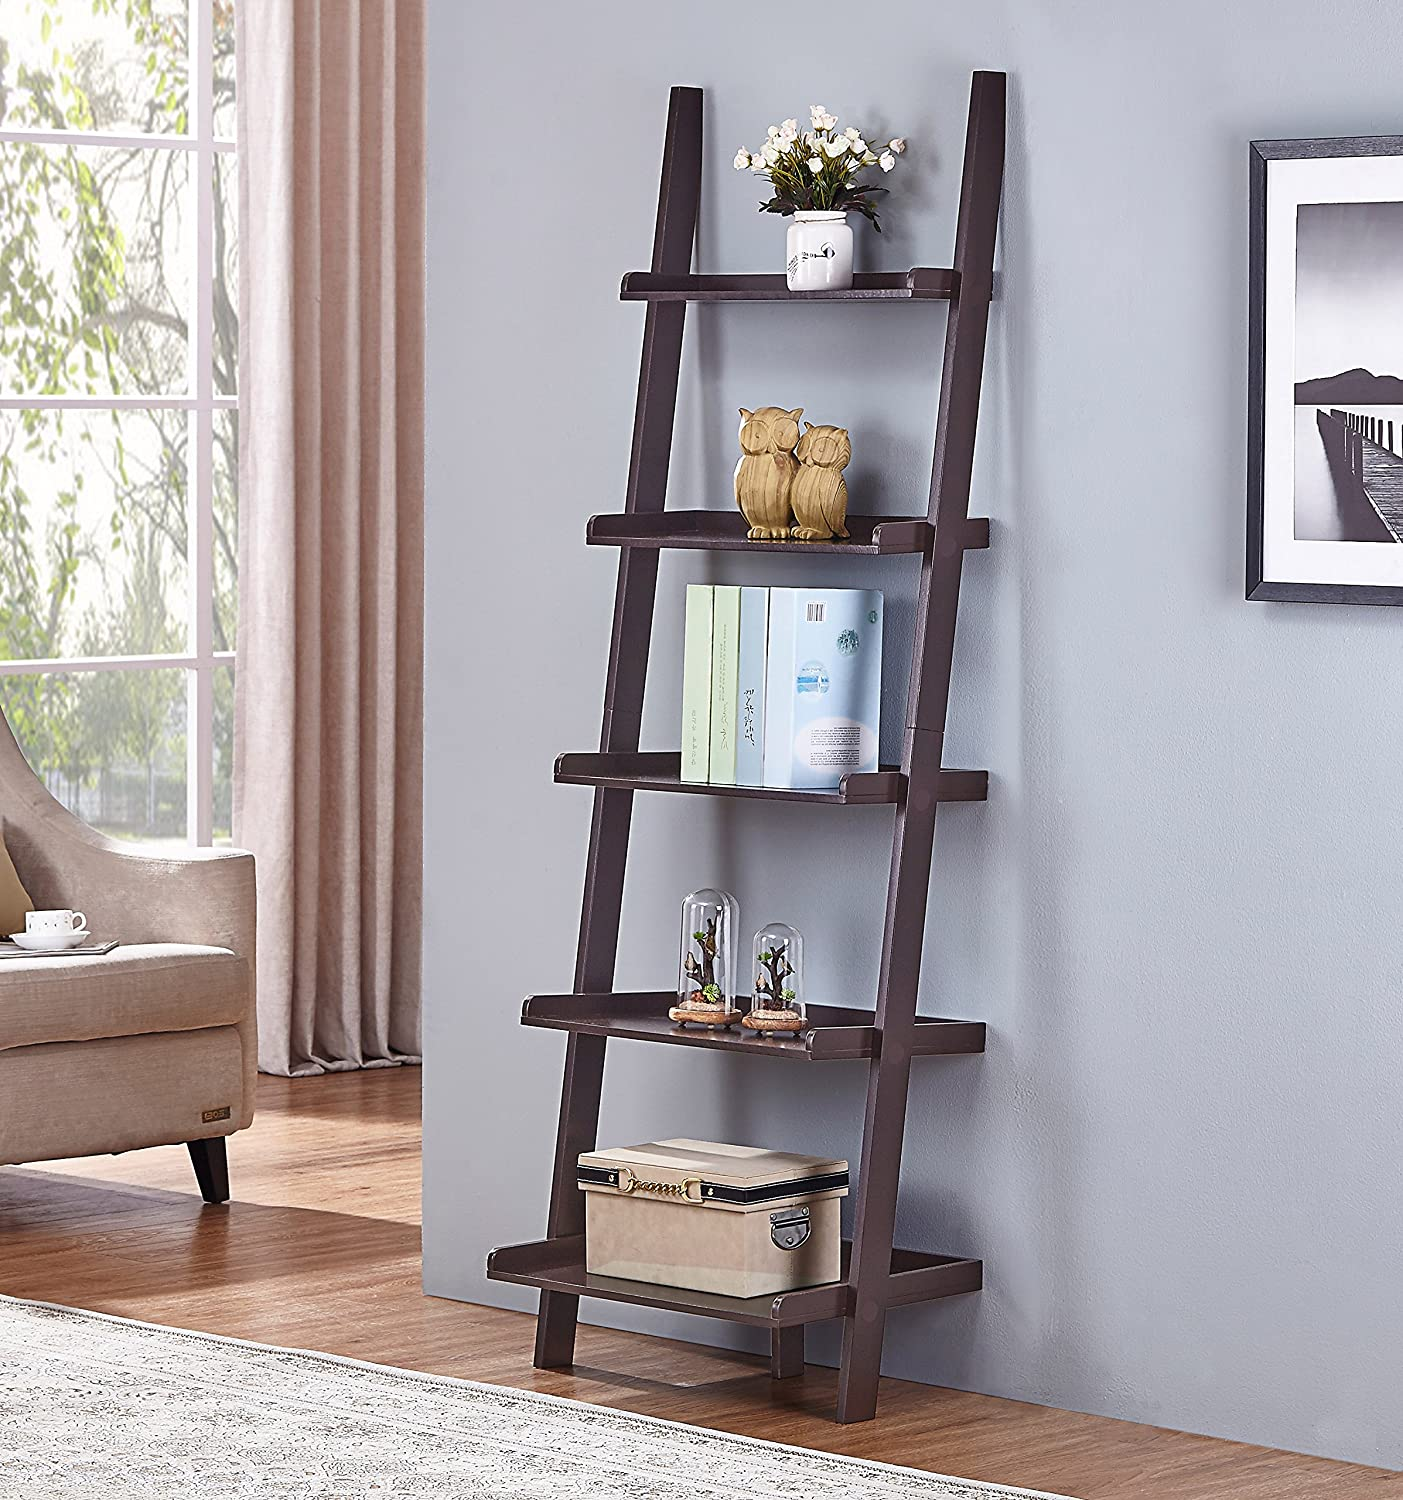 shelf bookcases espresso size book full ebony target leaning dimensions shelving unit threshold of measurements corner design wall shelves slanted best bookshelf ladder carson bookcase narrow